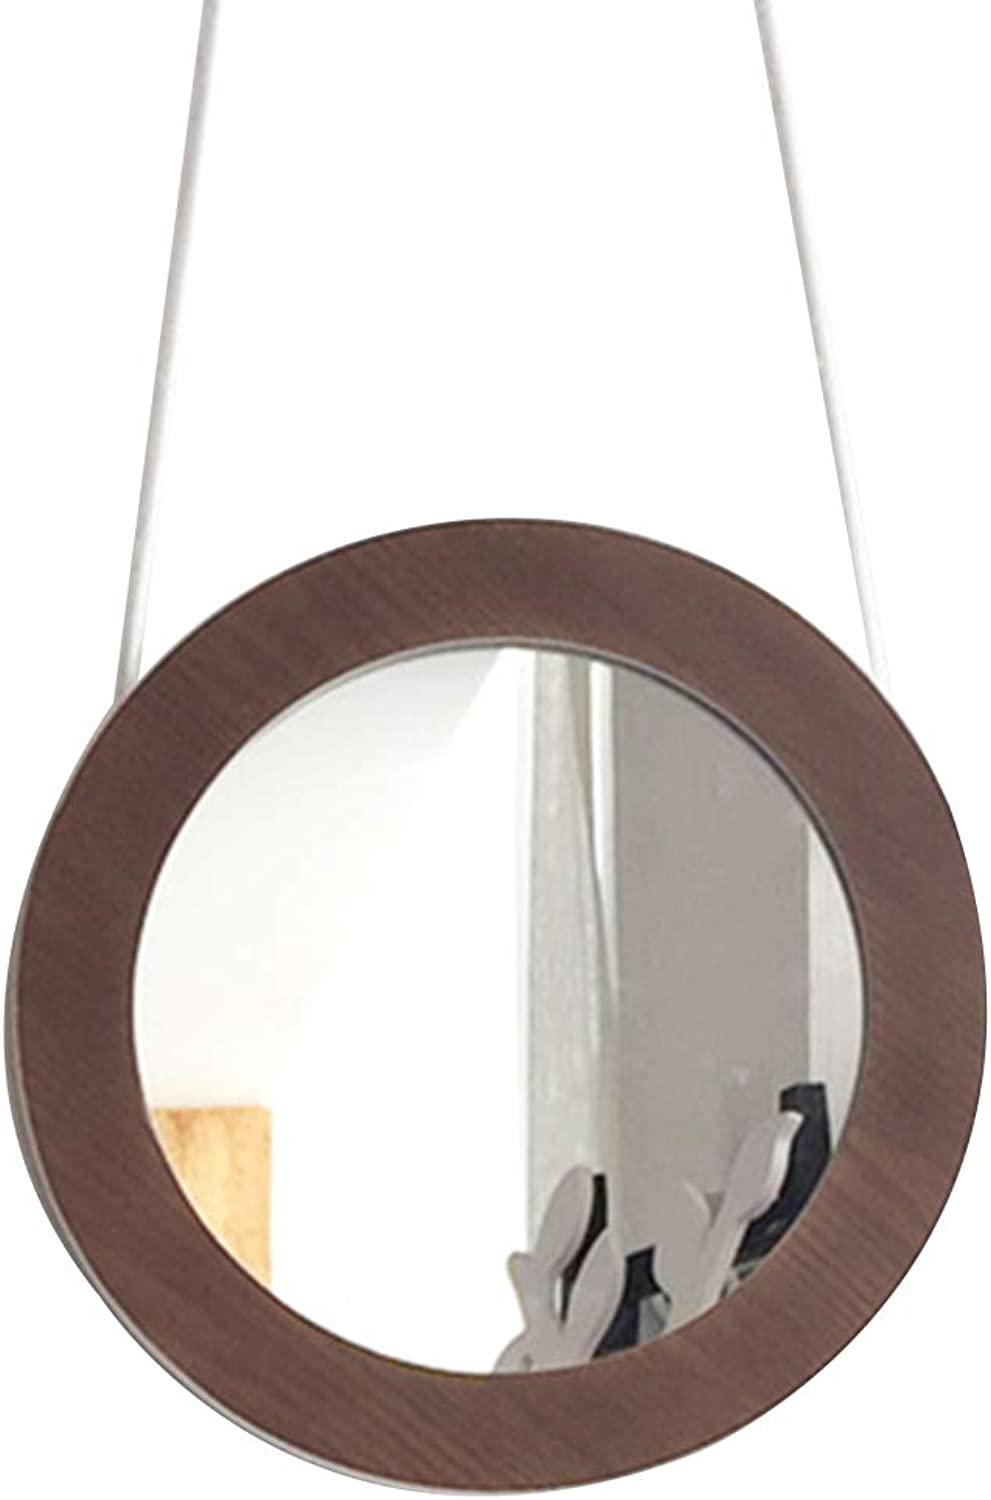 YANZHEN Mirror Wall-Mounted with Rope Simple and Modern Waterproof Bathroom Anticorrosive Solid Wood, 3 colors (color   Brown, Size   28x28cm)